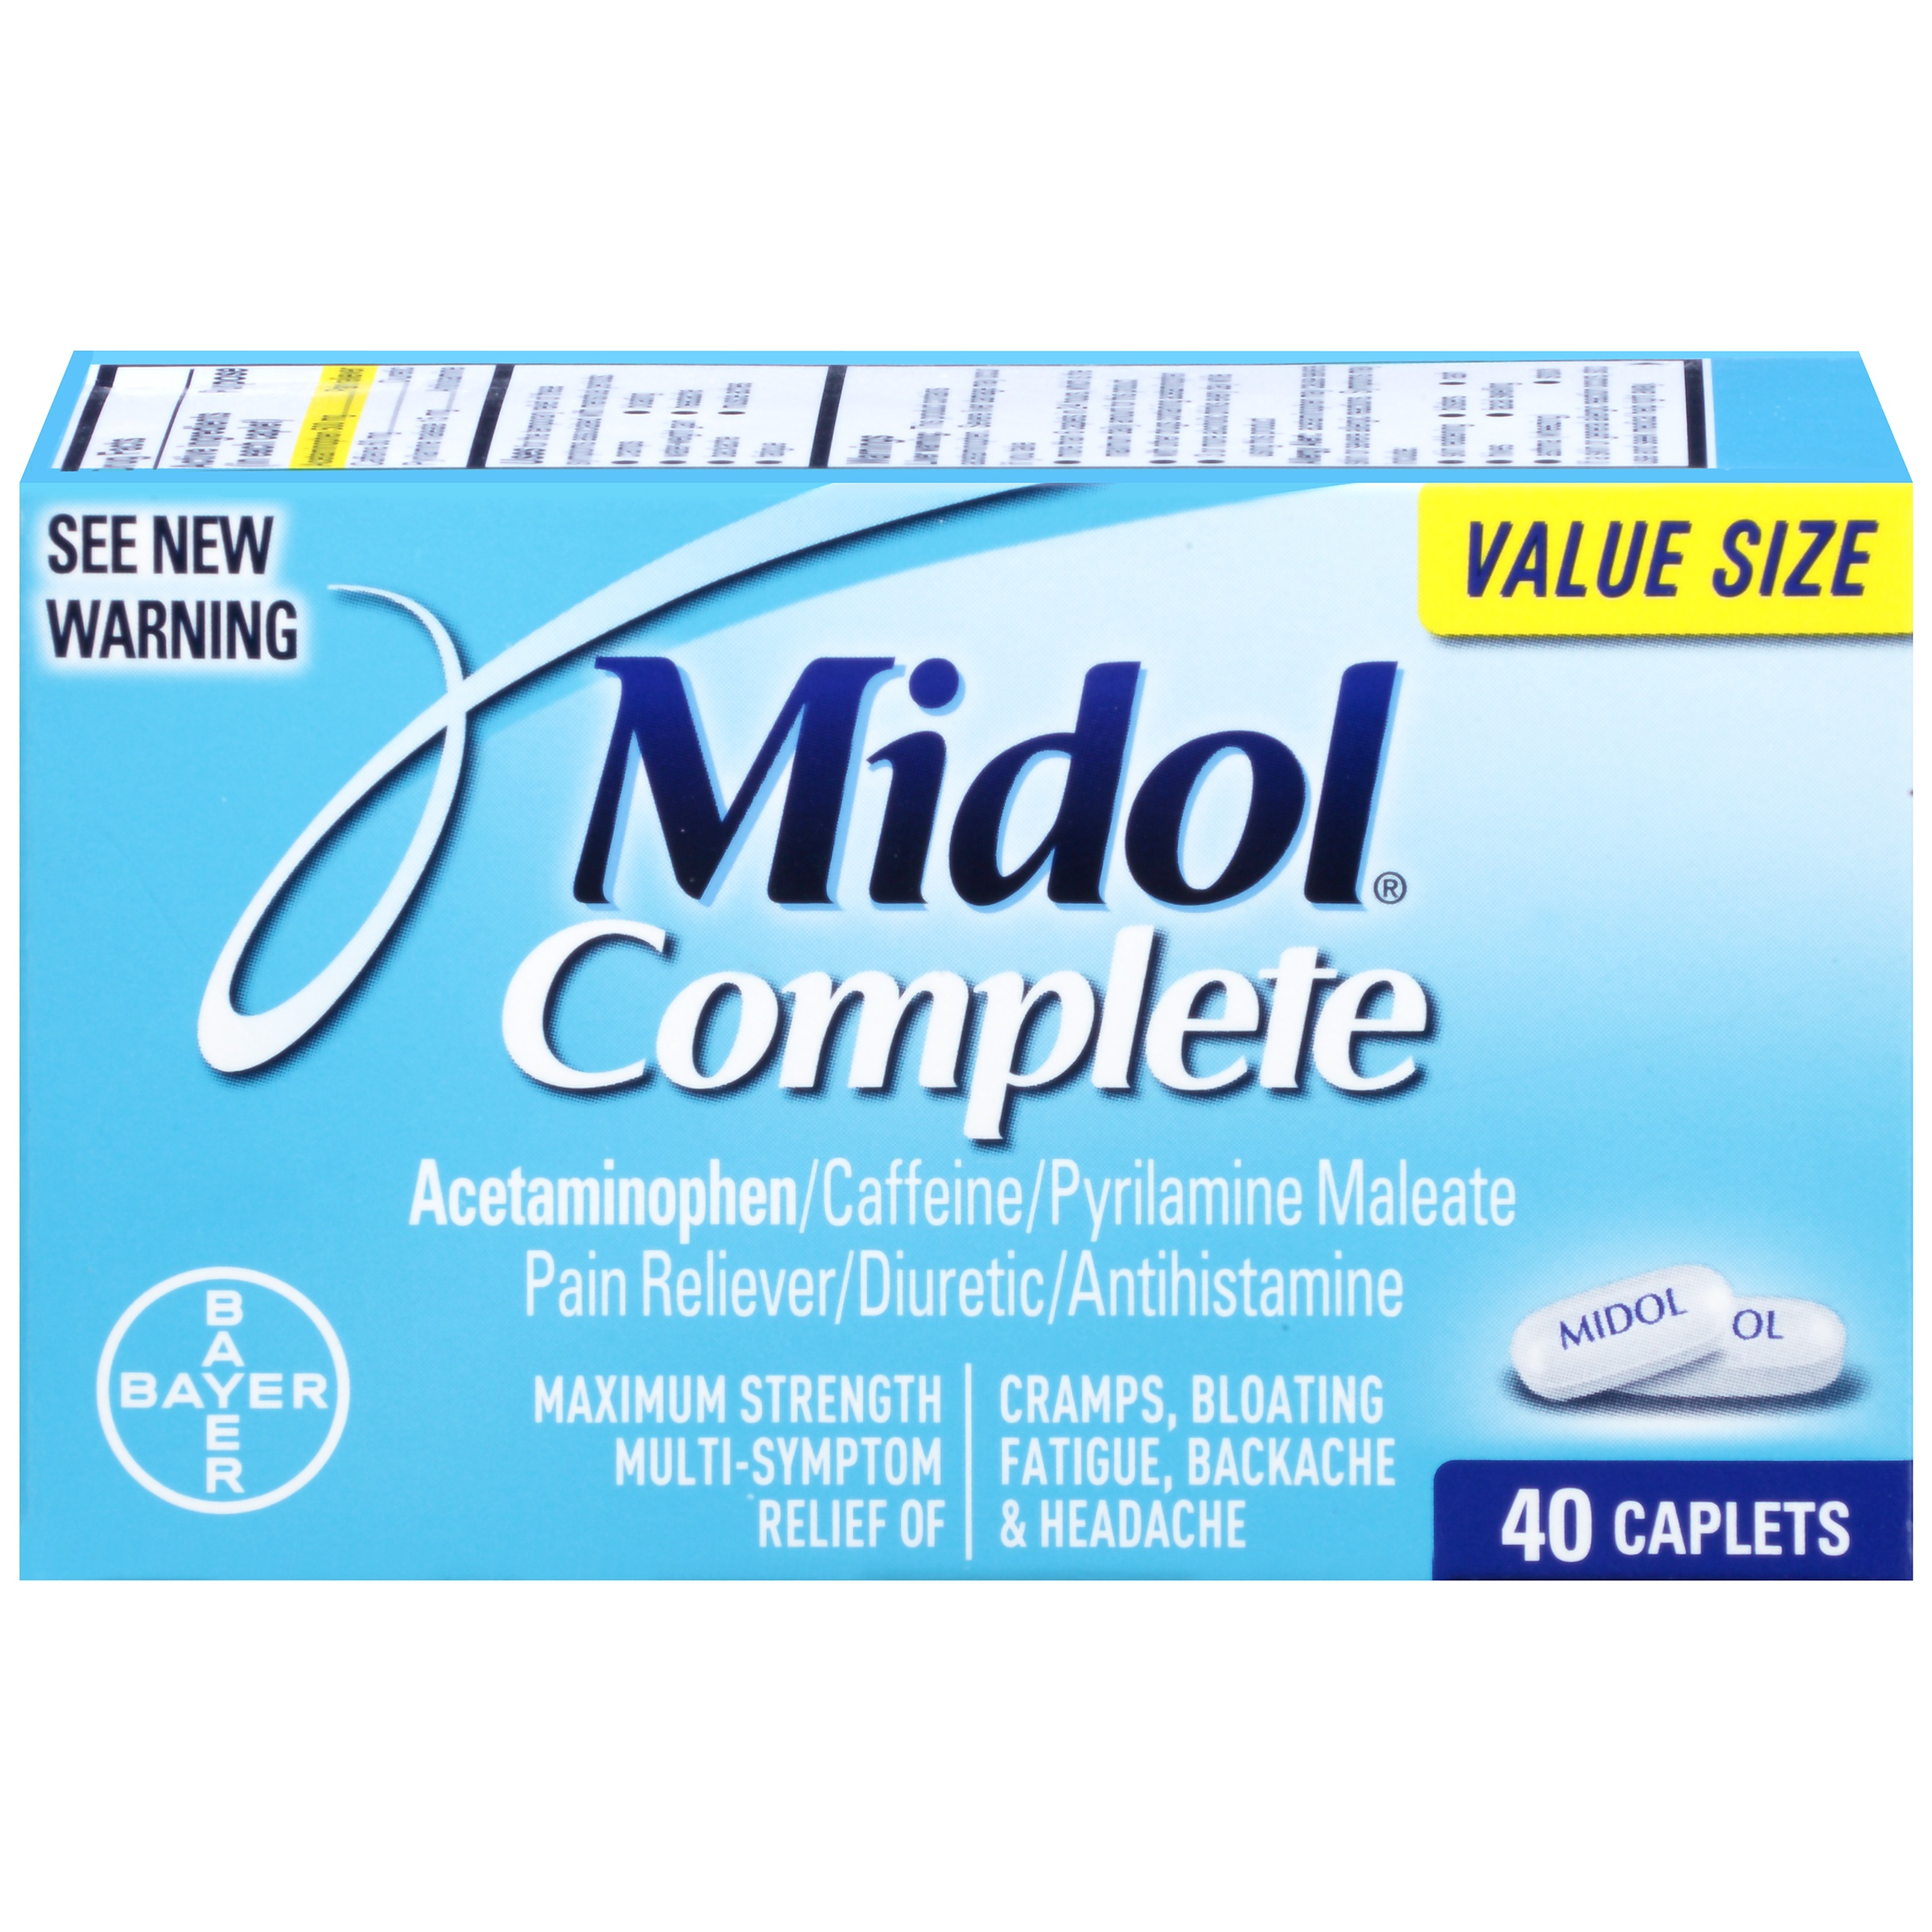 Midol Complete, Menstrual Period Symptoms Relief, Caplets, 40 Count